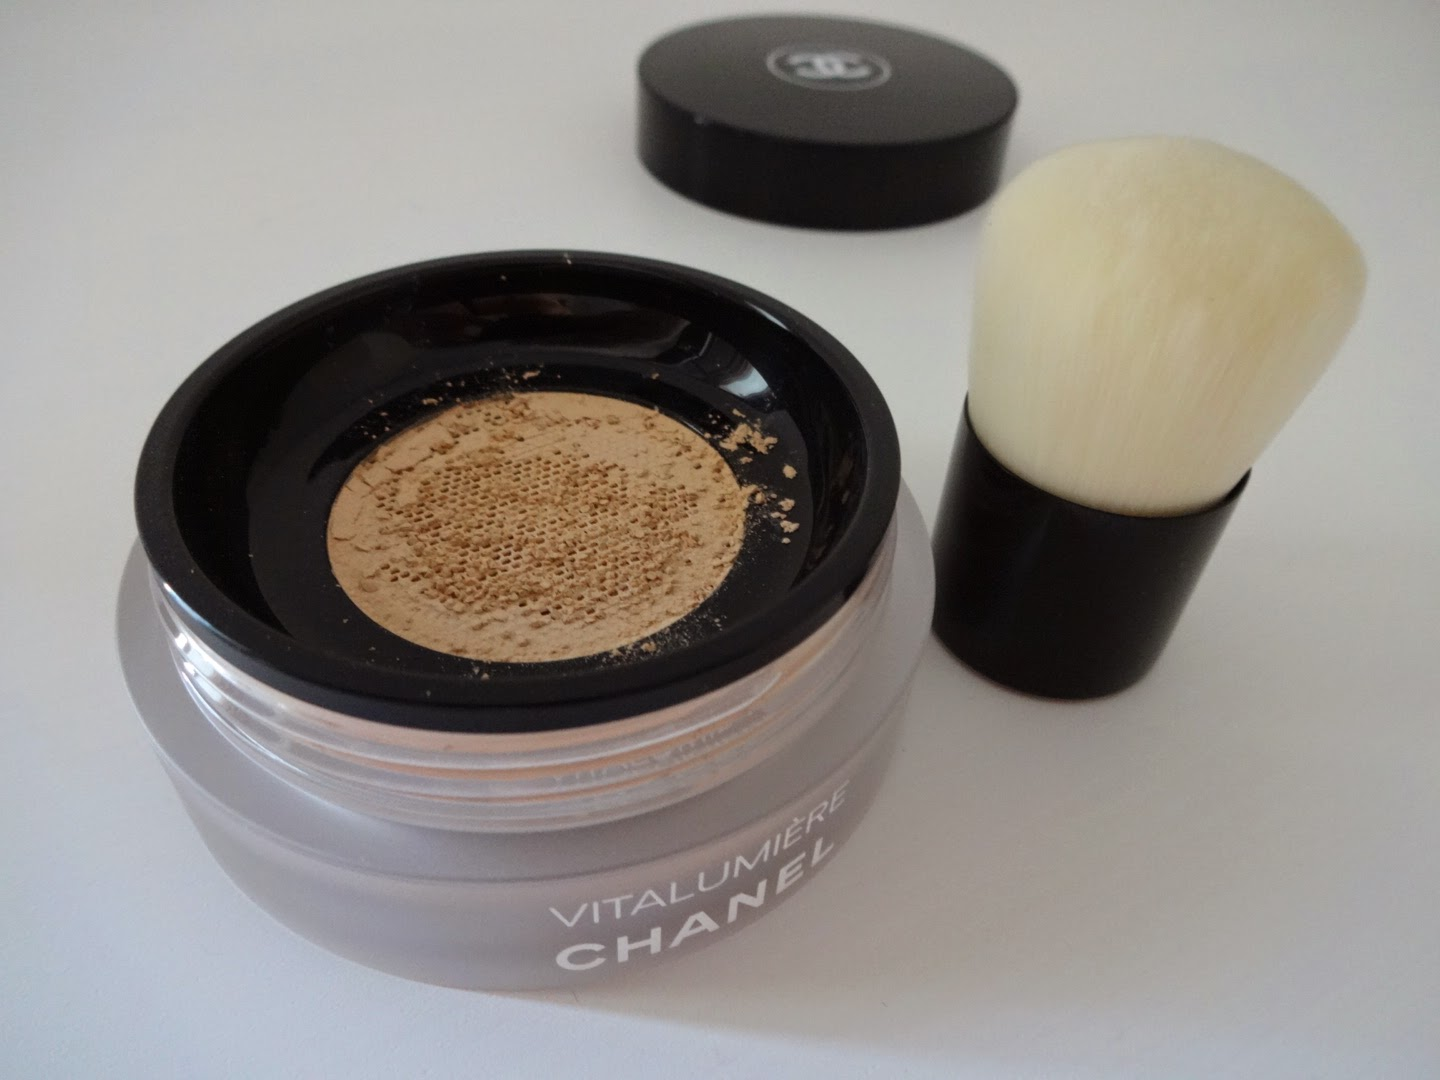 CHANEL Vitalumière Loose Powder Foundation, chanel fondotinta, fondotinta in polvere libera